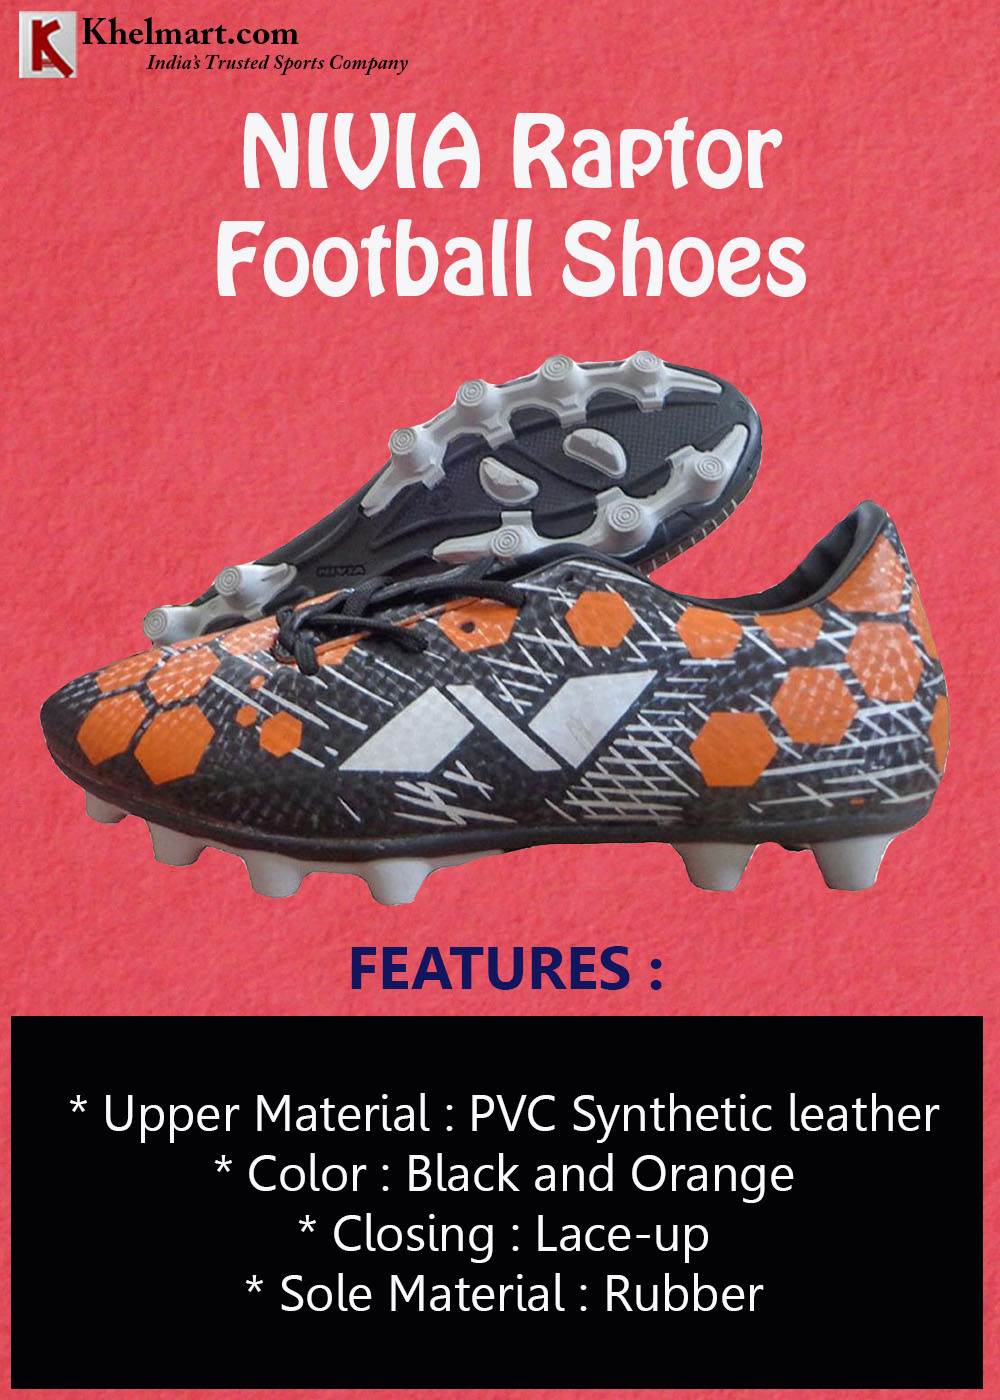 NIVIA Raptor Football Shoes Black and Orange